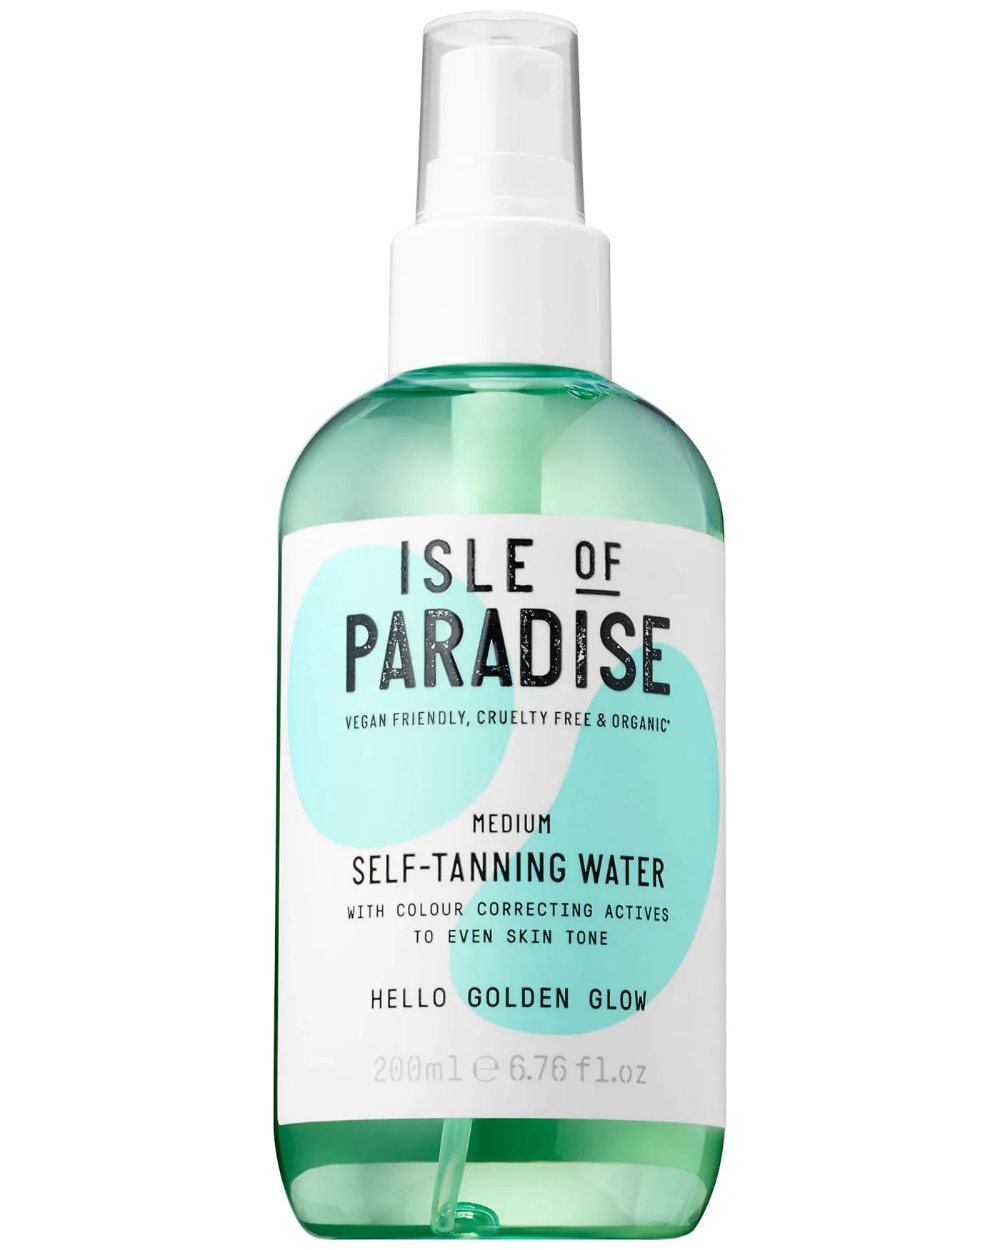 Editor S Picks 27 Of The Best Summer Beauty Essentials For Your Face Hair And Body Good Fake Tan Summer Beauty Essentials Body Spray